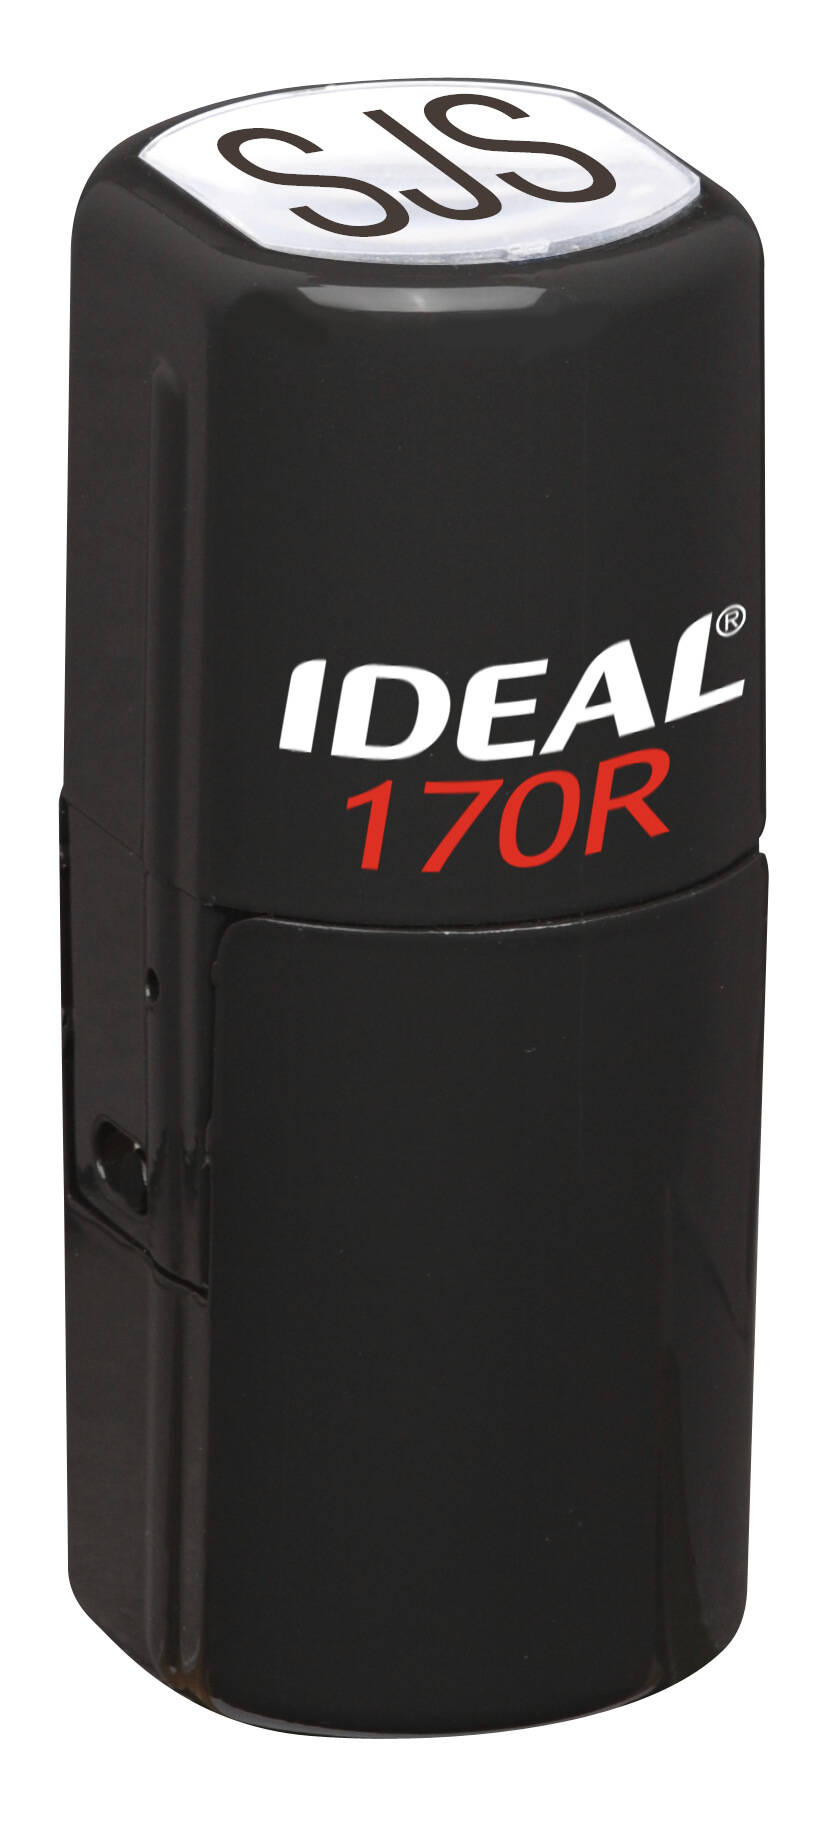 Ideal by Trodat 170R Round Stamp with Black Ink